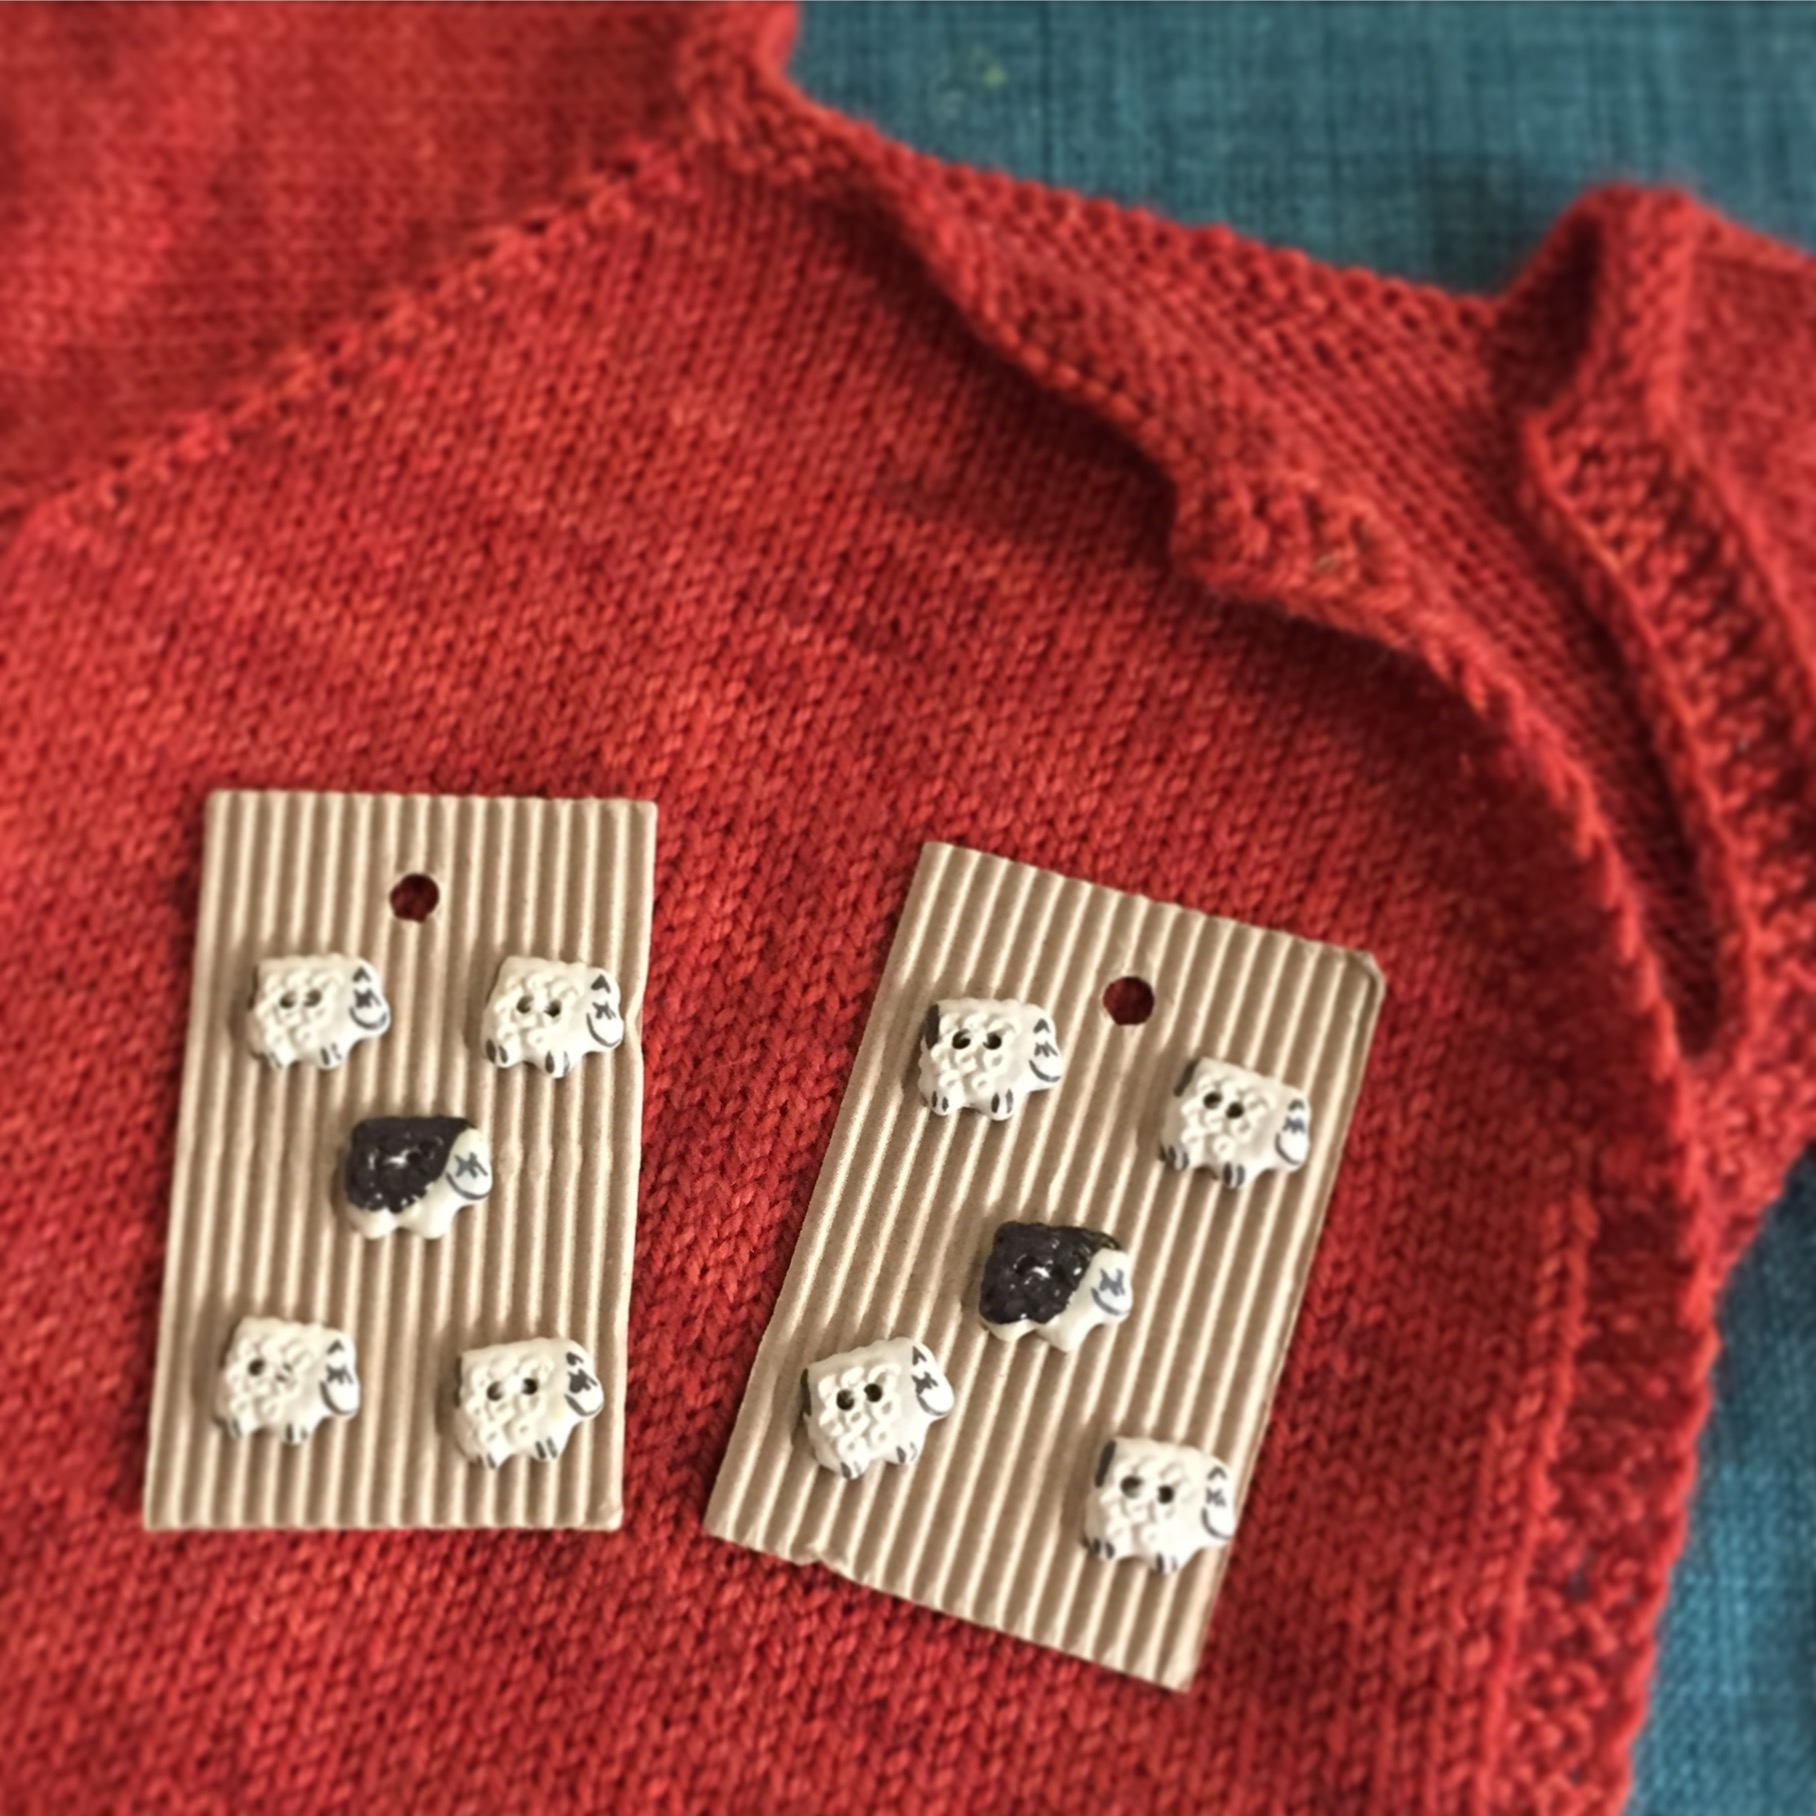 Sheep buttons for a baby sweater